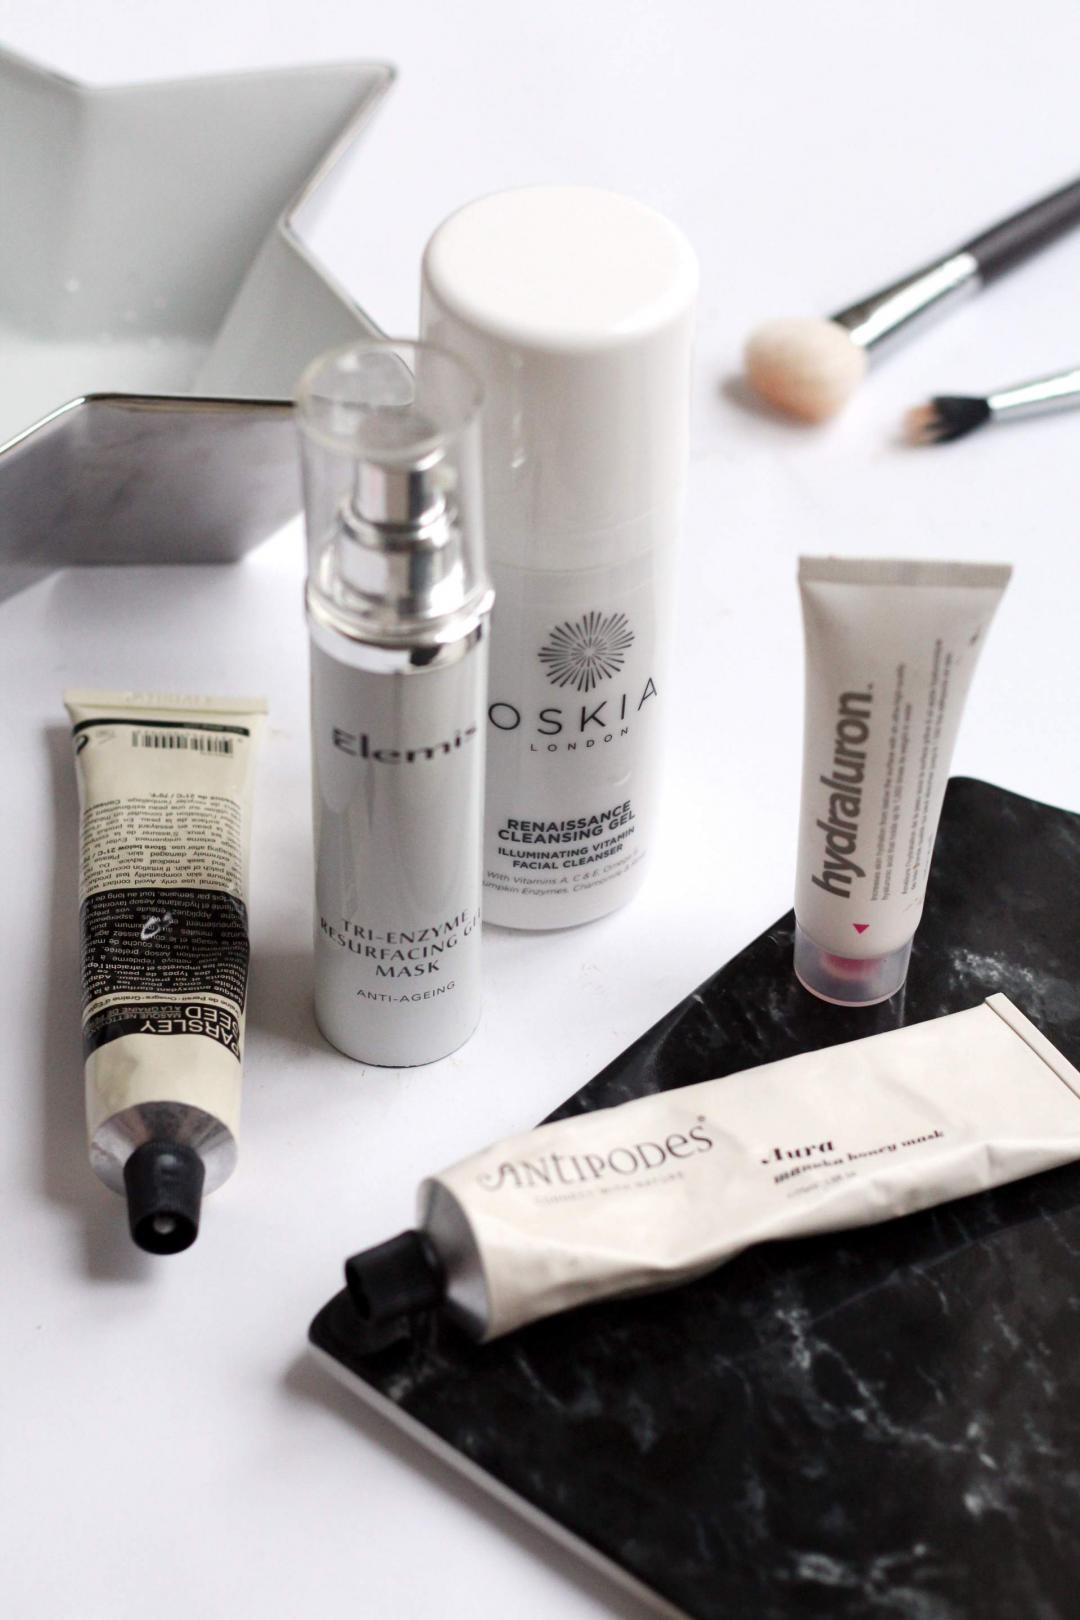 party-prep-skincare-oskia-cleansing-gel-elemi-mak-aesop-parsley-seed-antipodes-aura-hydraluron-1